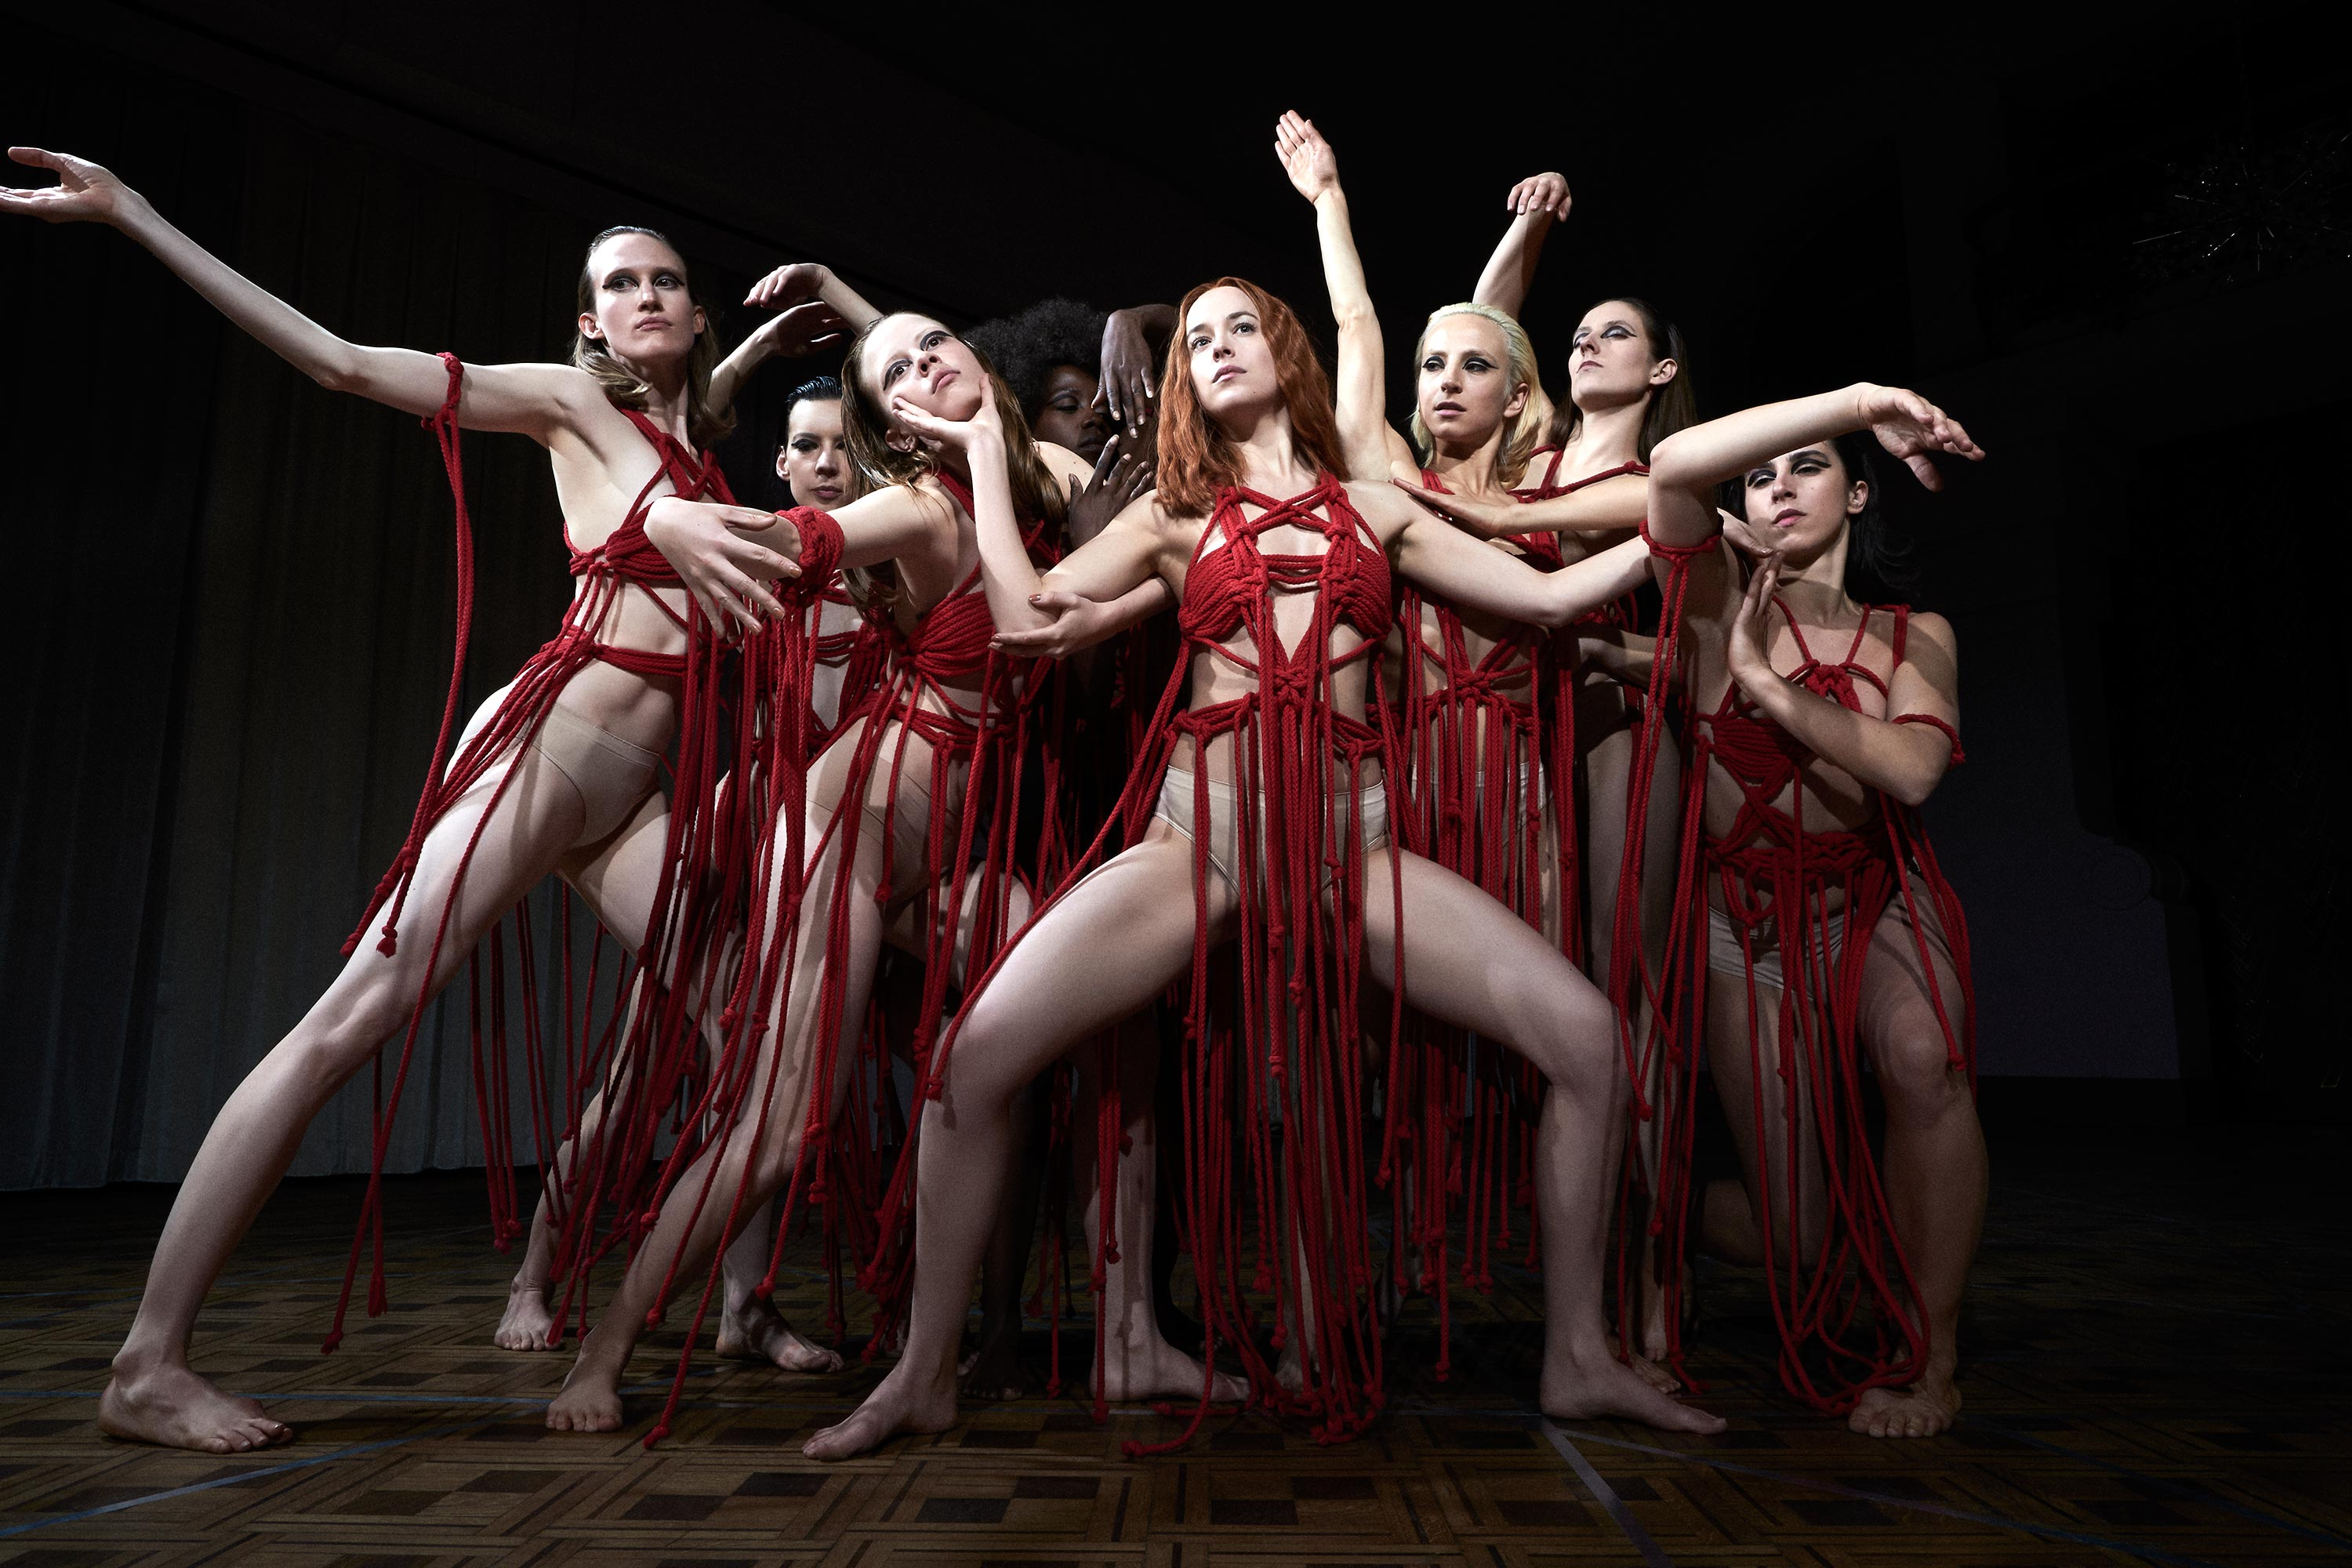 Novo trailer do terror Suspiria destaca a dança macabra de Dakota Johnson